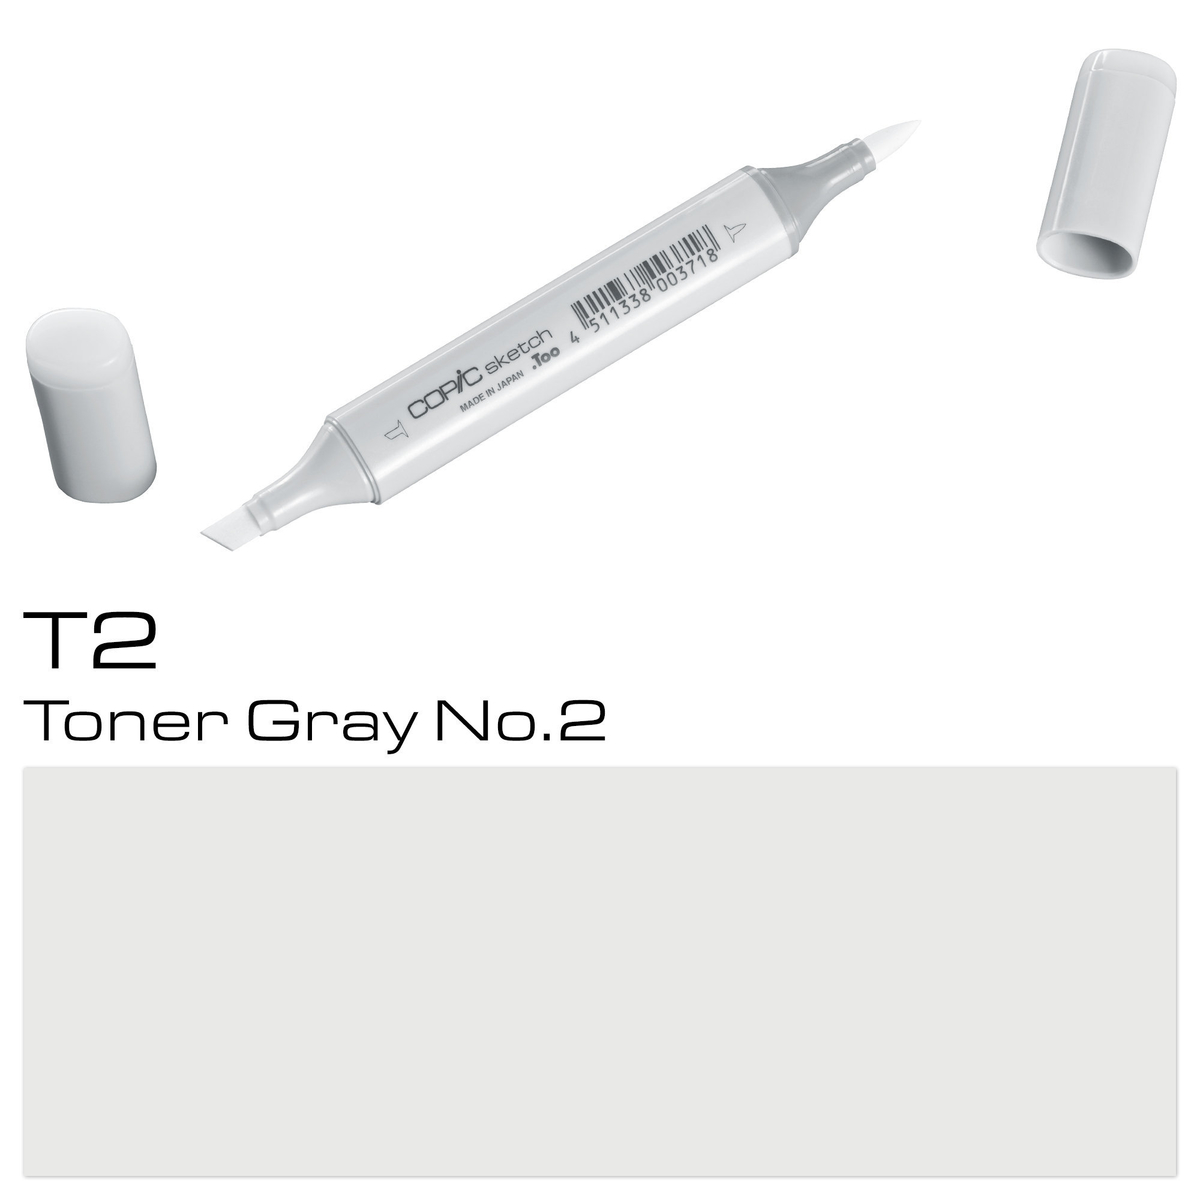 Copic Sketch T 2 toner gray